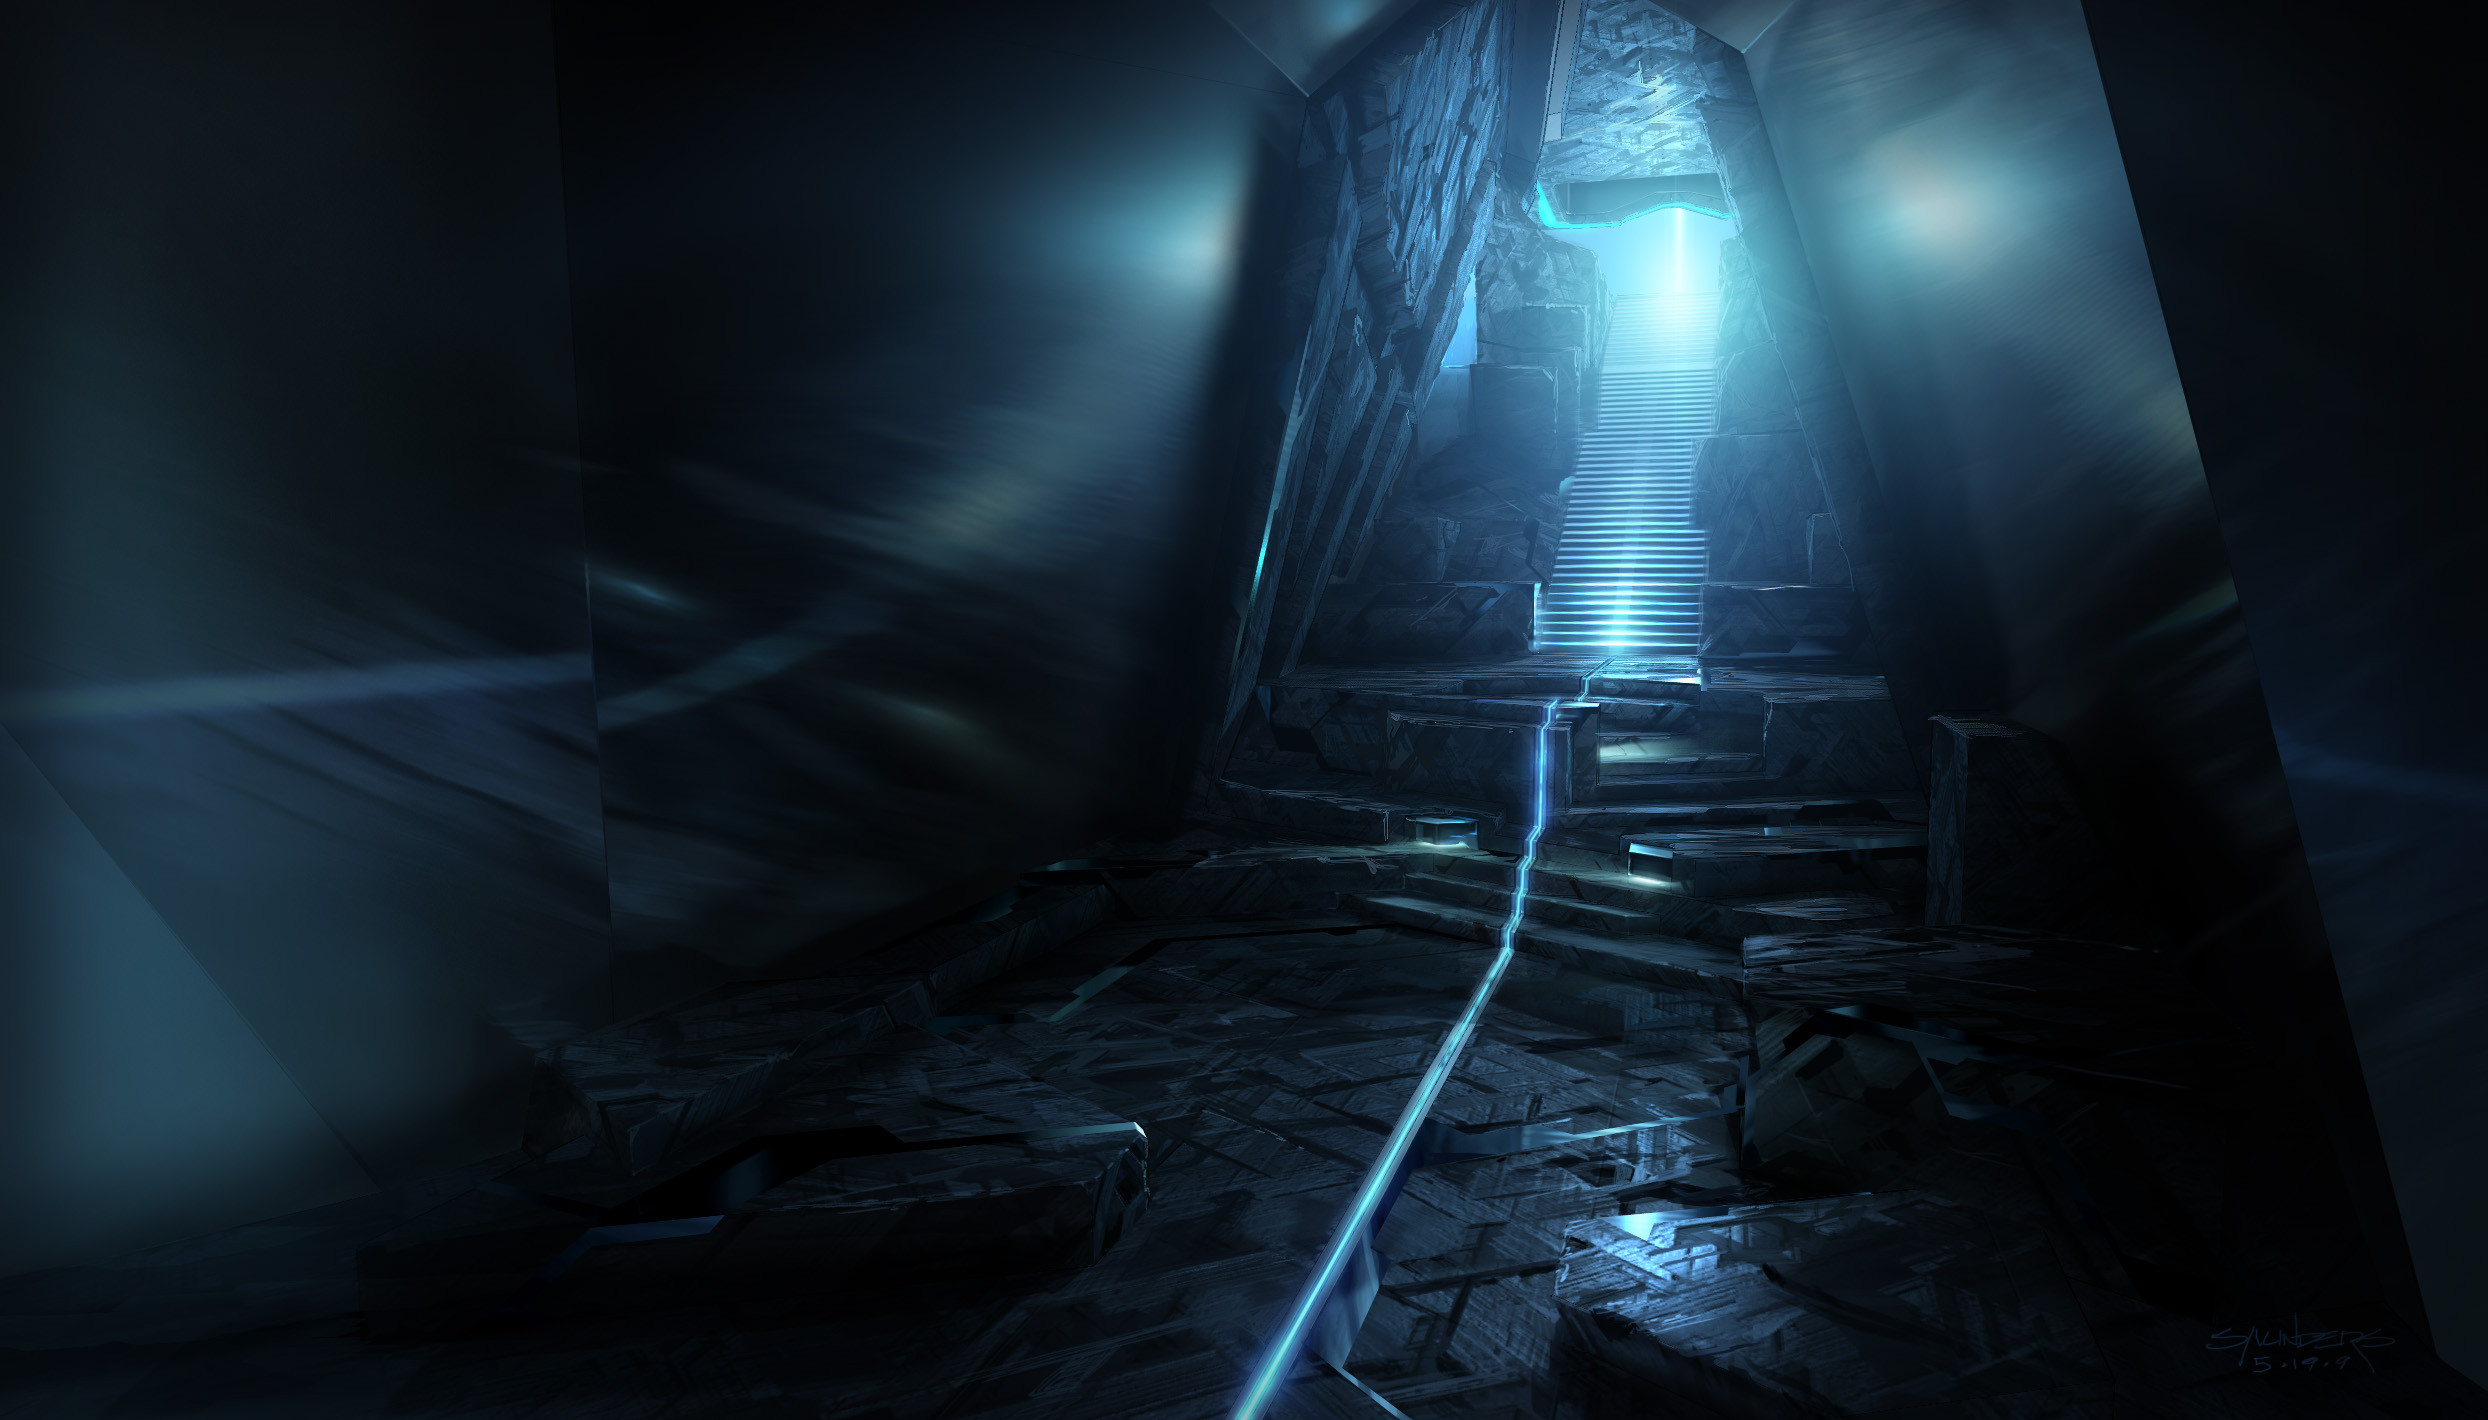 View of the entrance tunnel leading to the Portal. Never seen in the movie, but I liked the drama of this view.